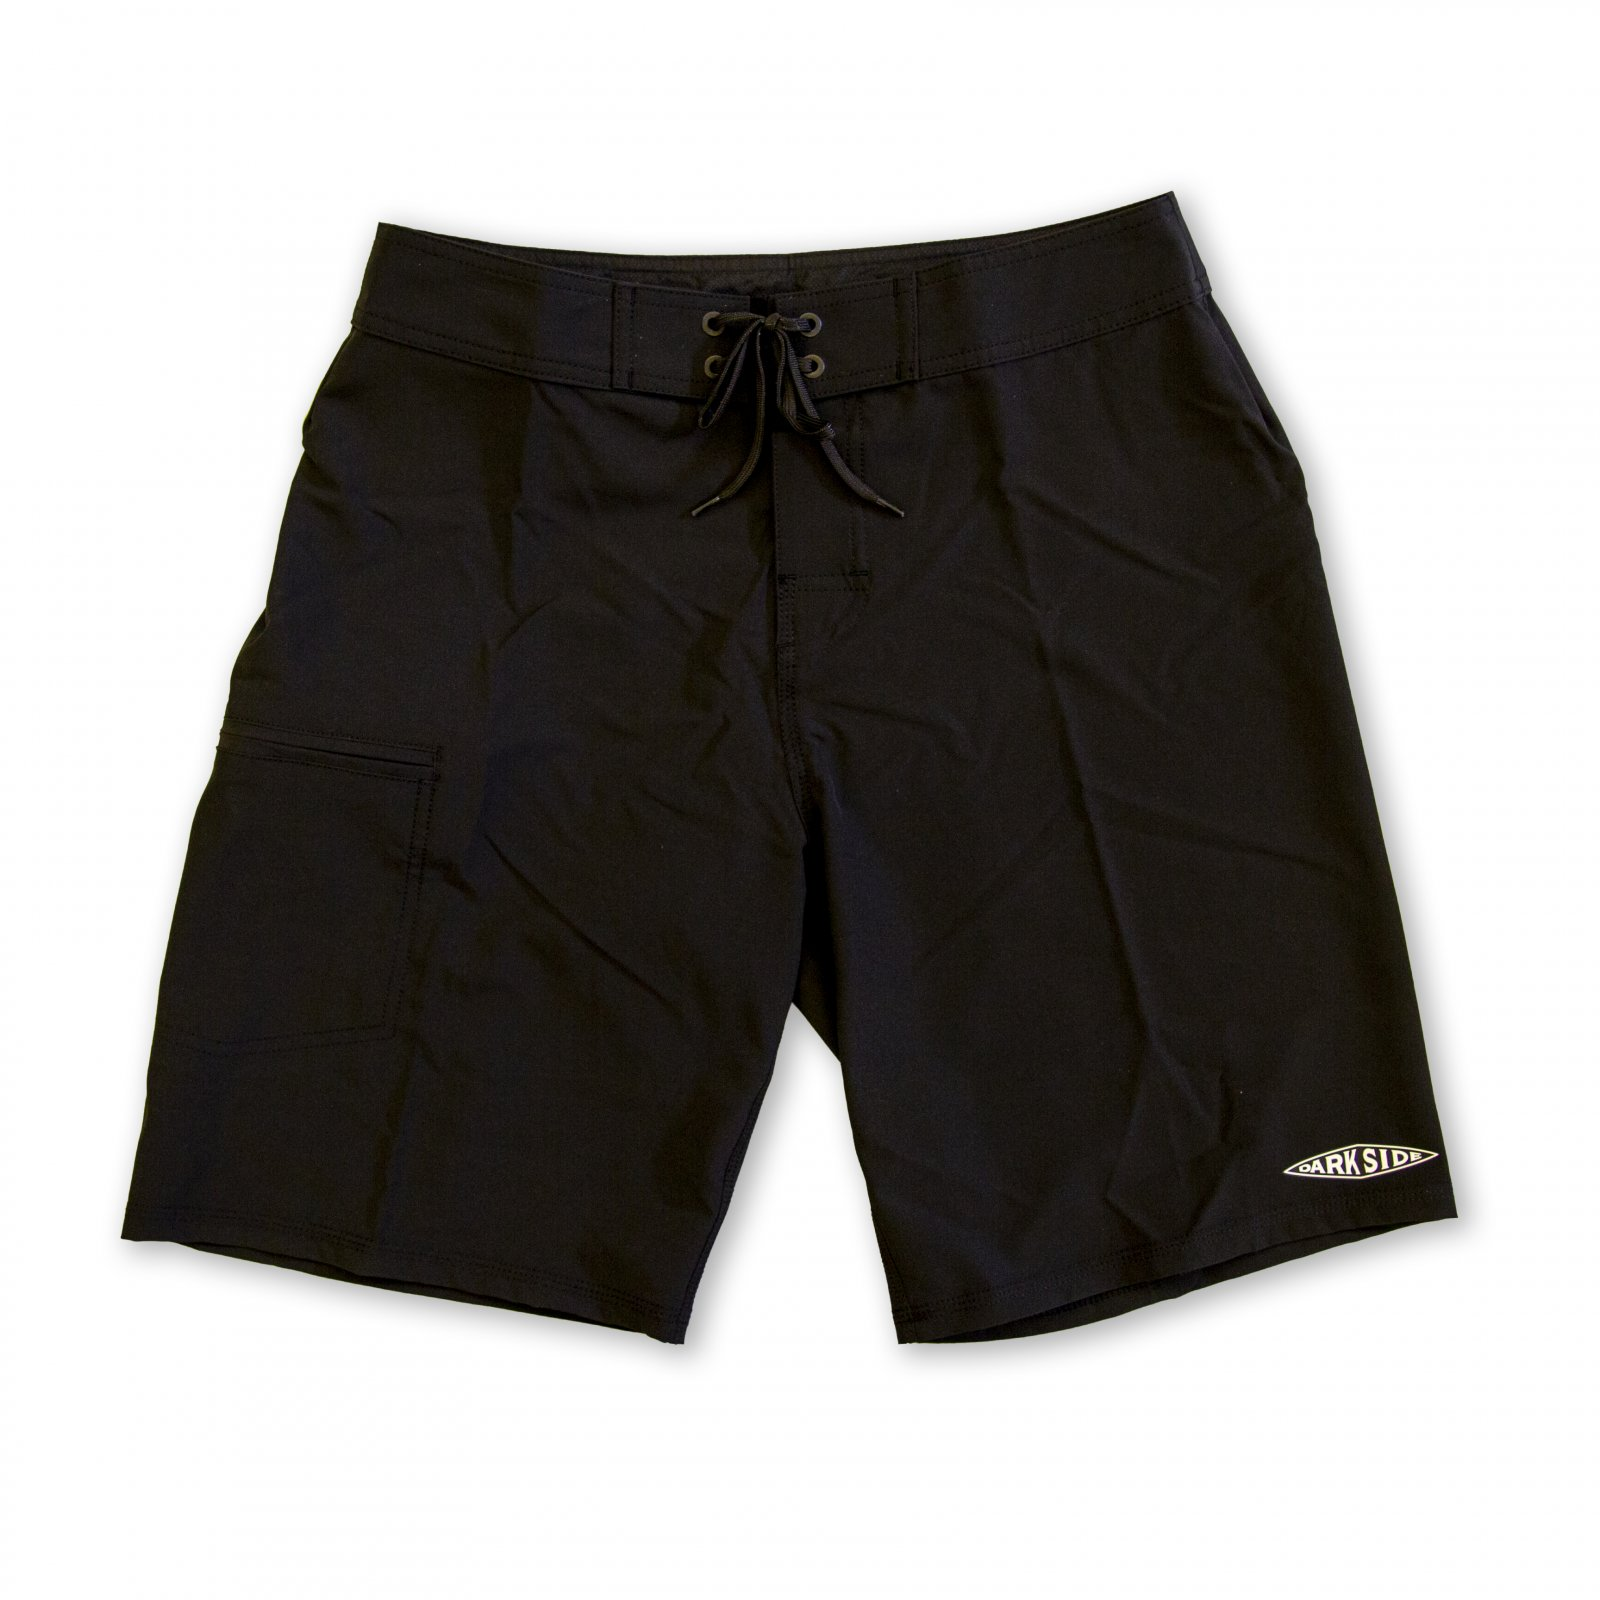 Darkside Diamond Boardshorts